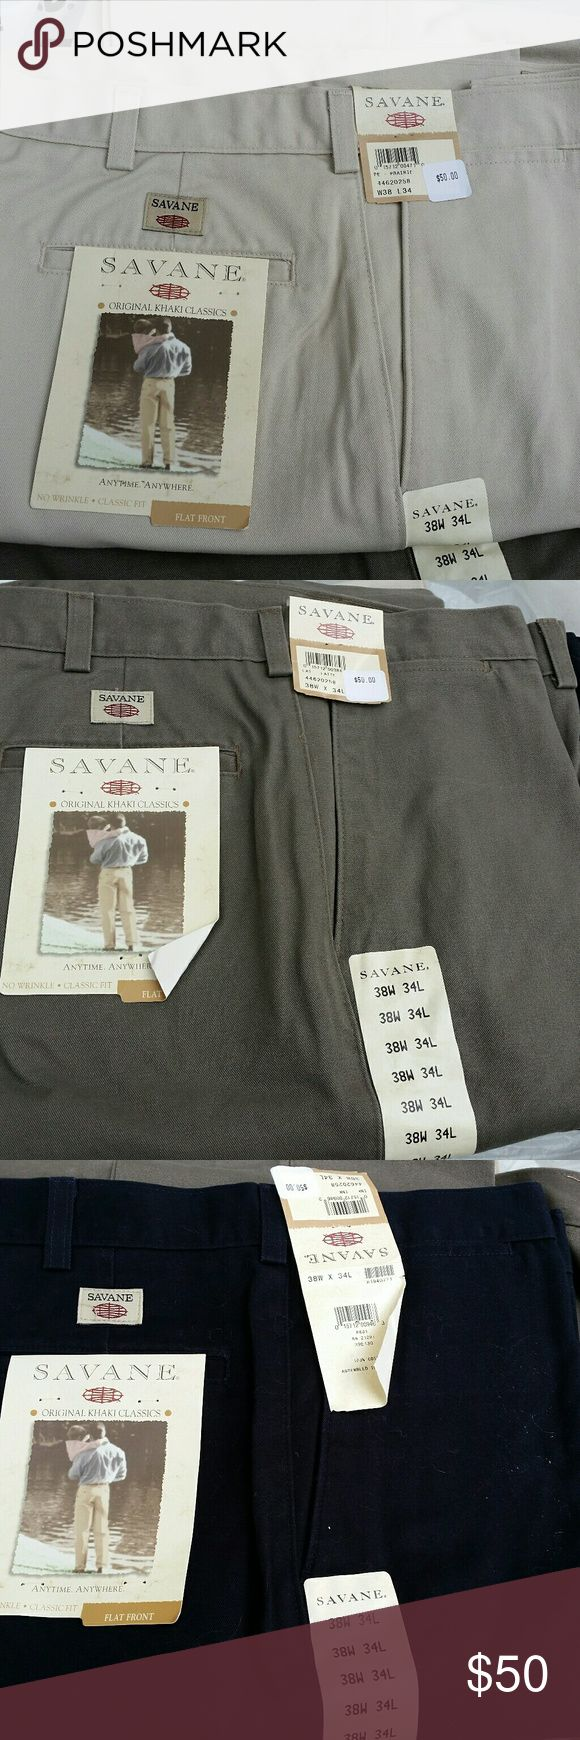 SAVANE CLASSIC FIT FLAT FRONT MEN'S TROUSERS Set of three brand new classic khaki's in Latte a dark khaki, Ink a black, and Prairie a tan all in size waist 38 and length 34 SAVANE  Pants Chinos & Khakis